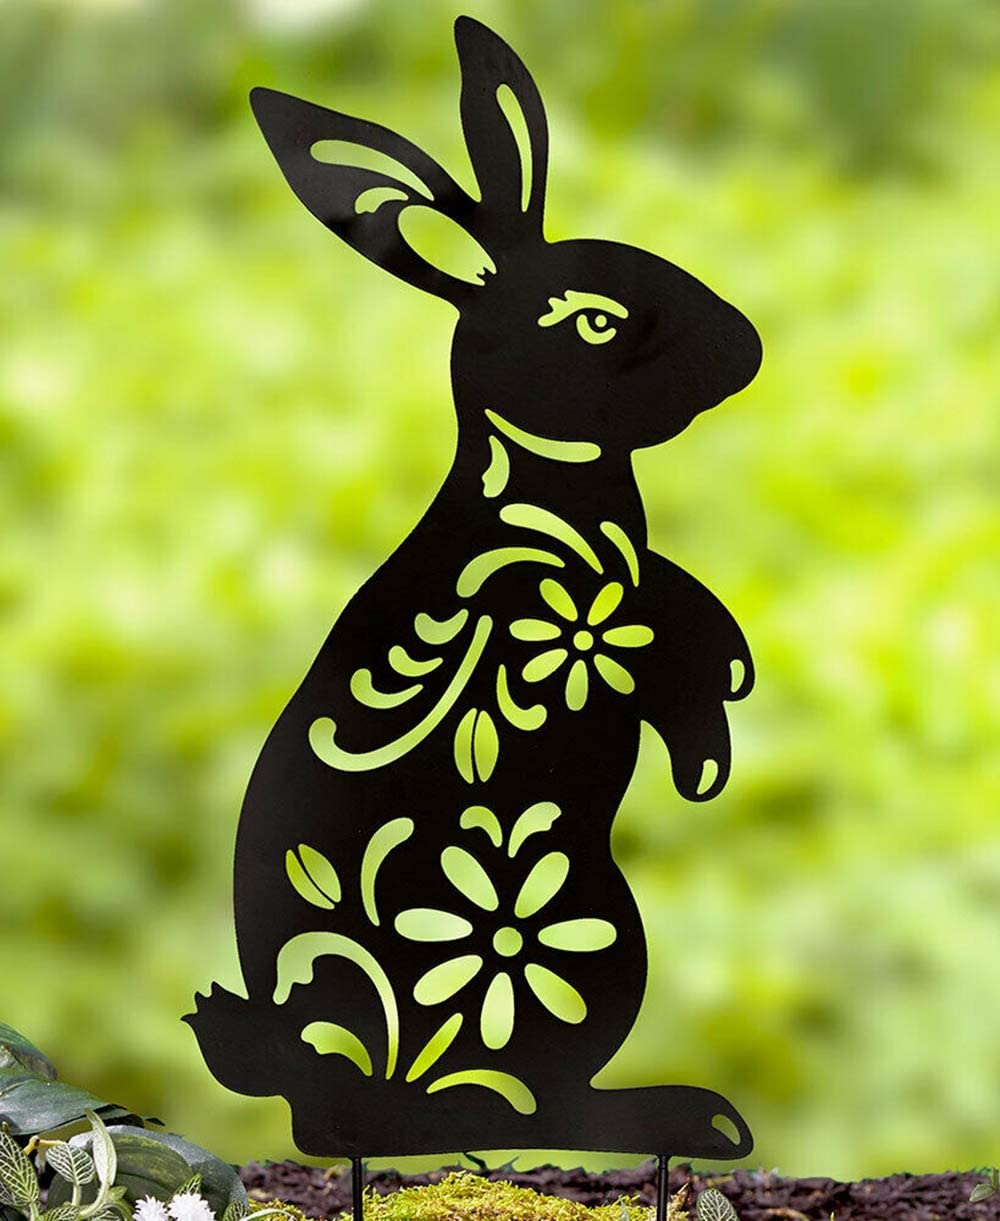 Briskly41 Animal Silhouette Stake Black Bunny Rabbit Garden Stake Yard Art Lawn Outdoor Patio Home Decor Floral Cutouts Metal Decorations Country